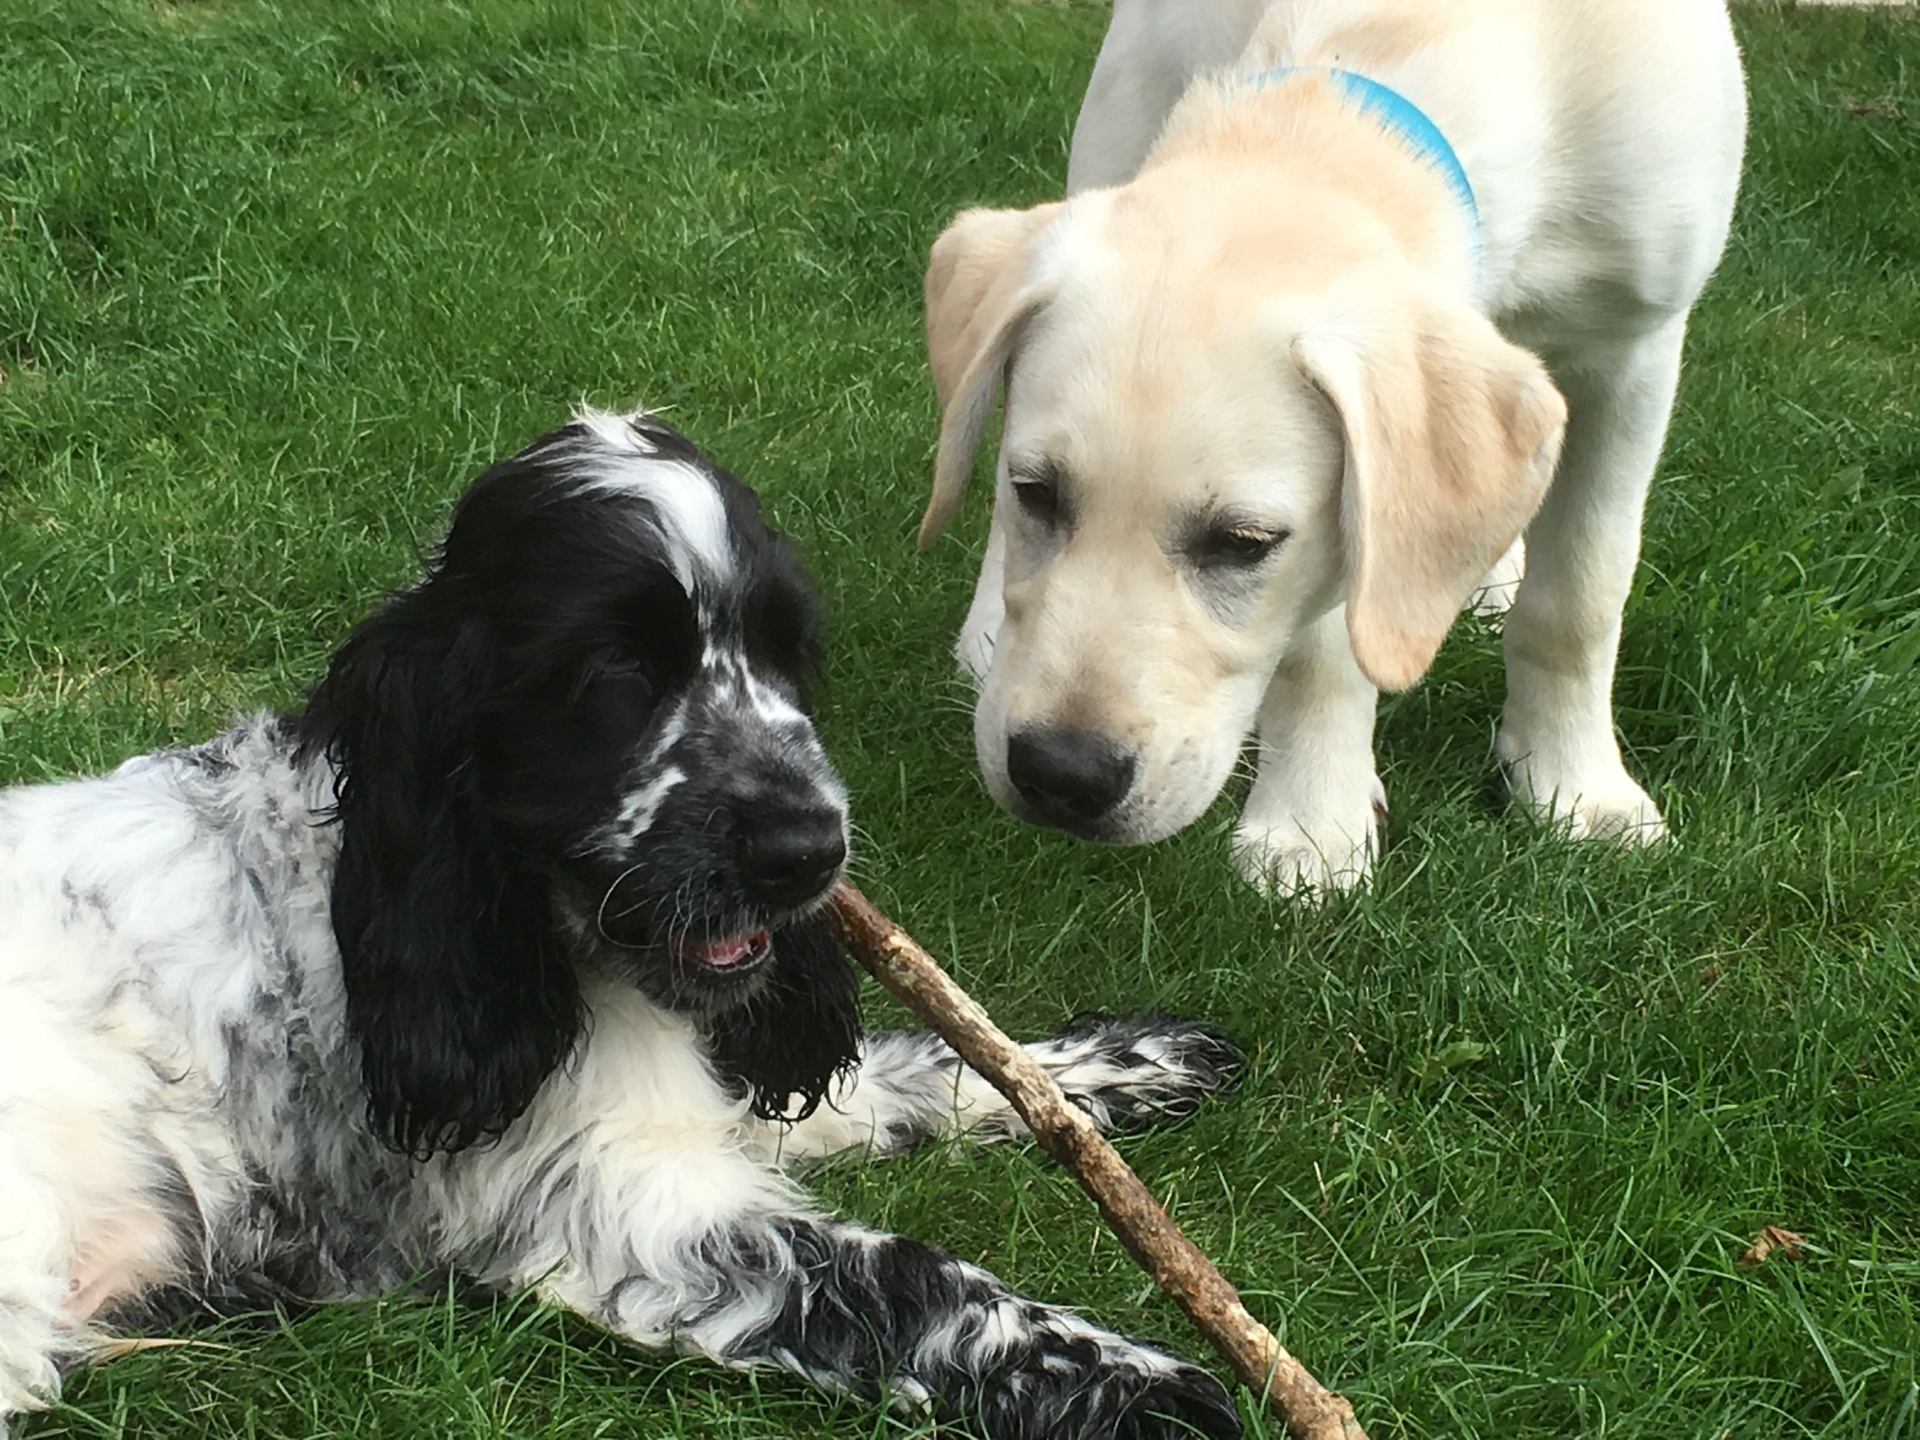 Cocker Spainel & Labrador Puppies